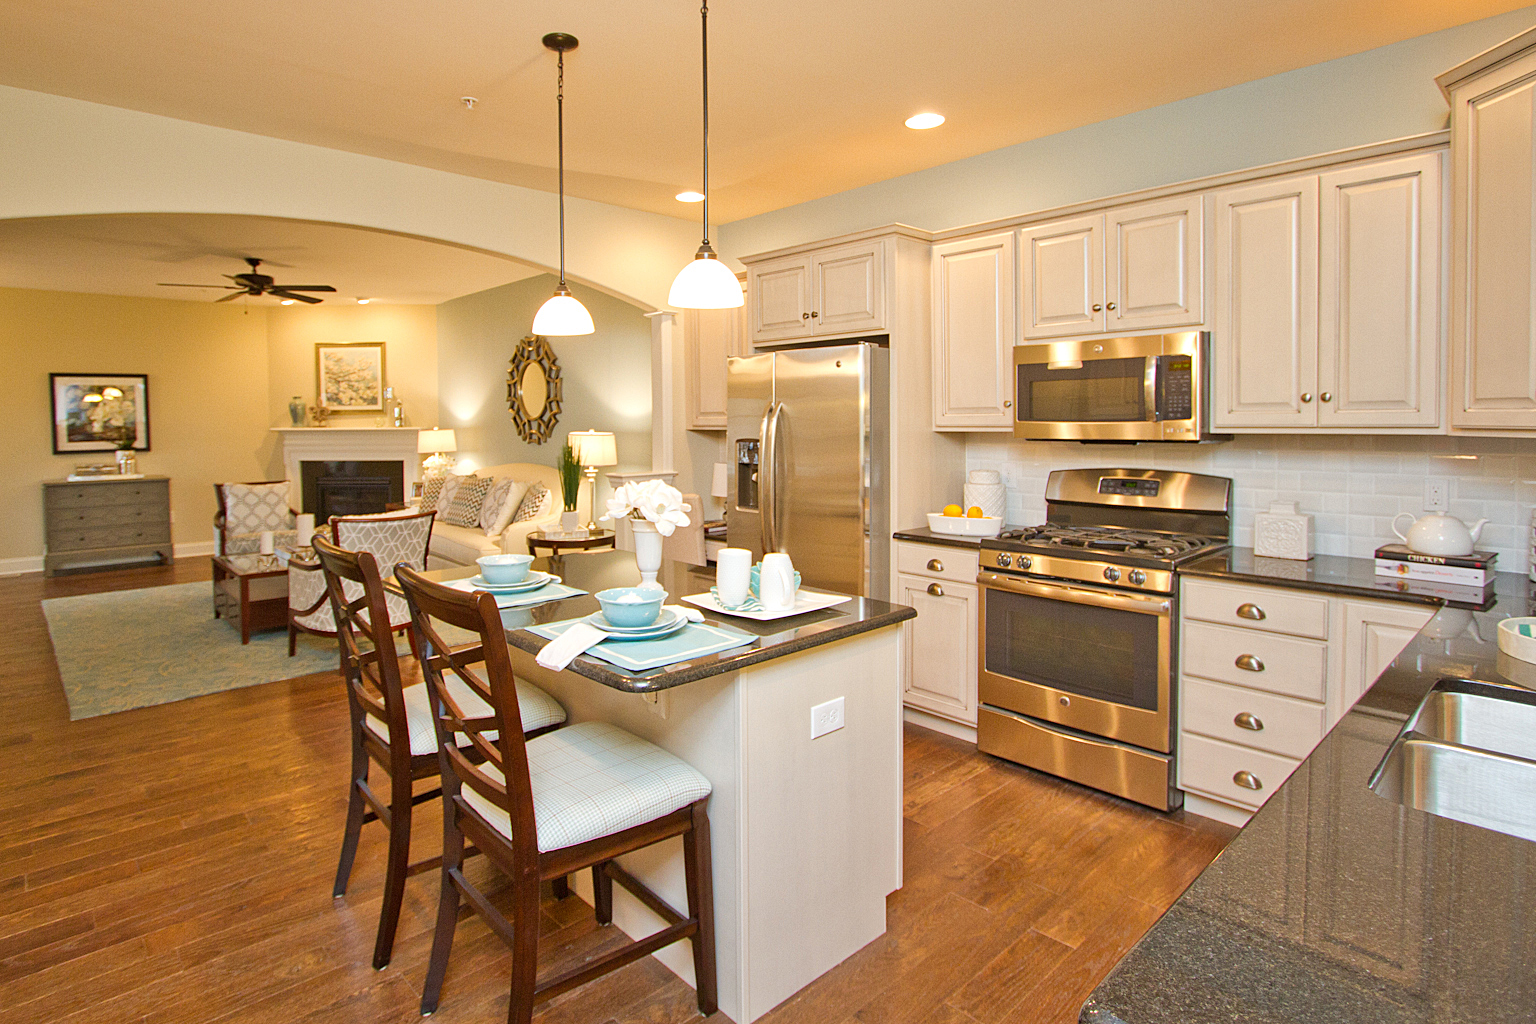 Lititz Reserve Addison - Kitchen Alt View